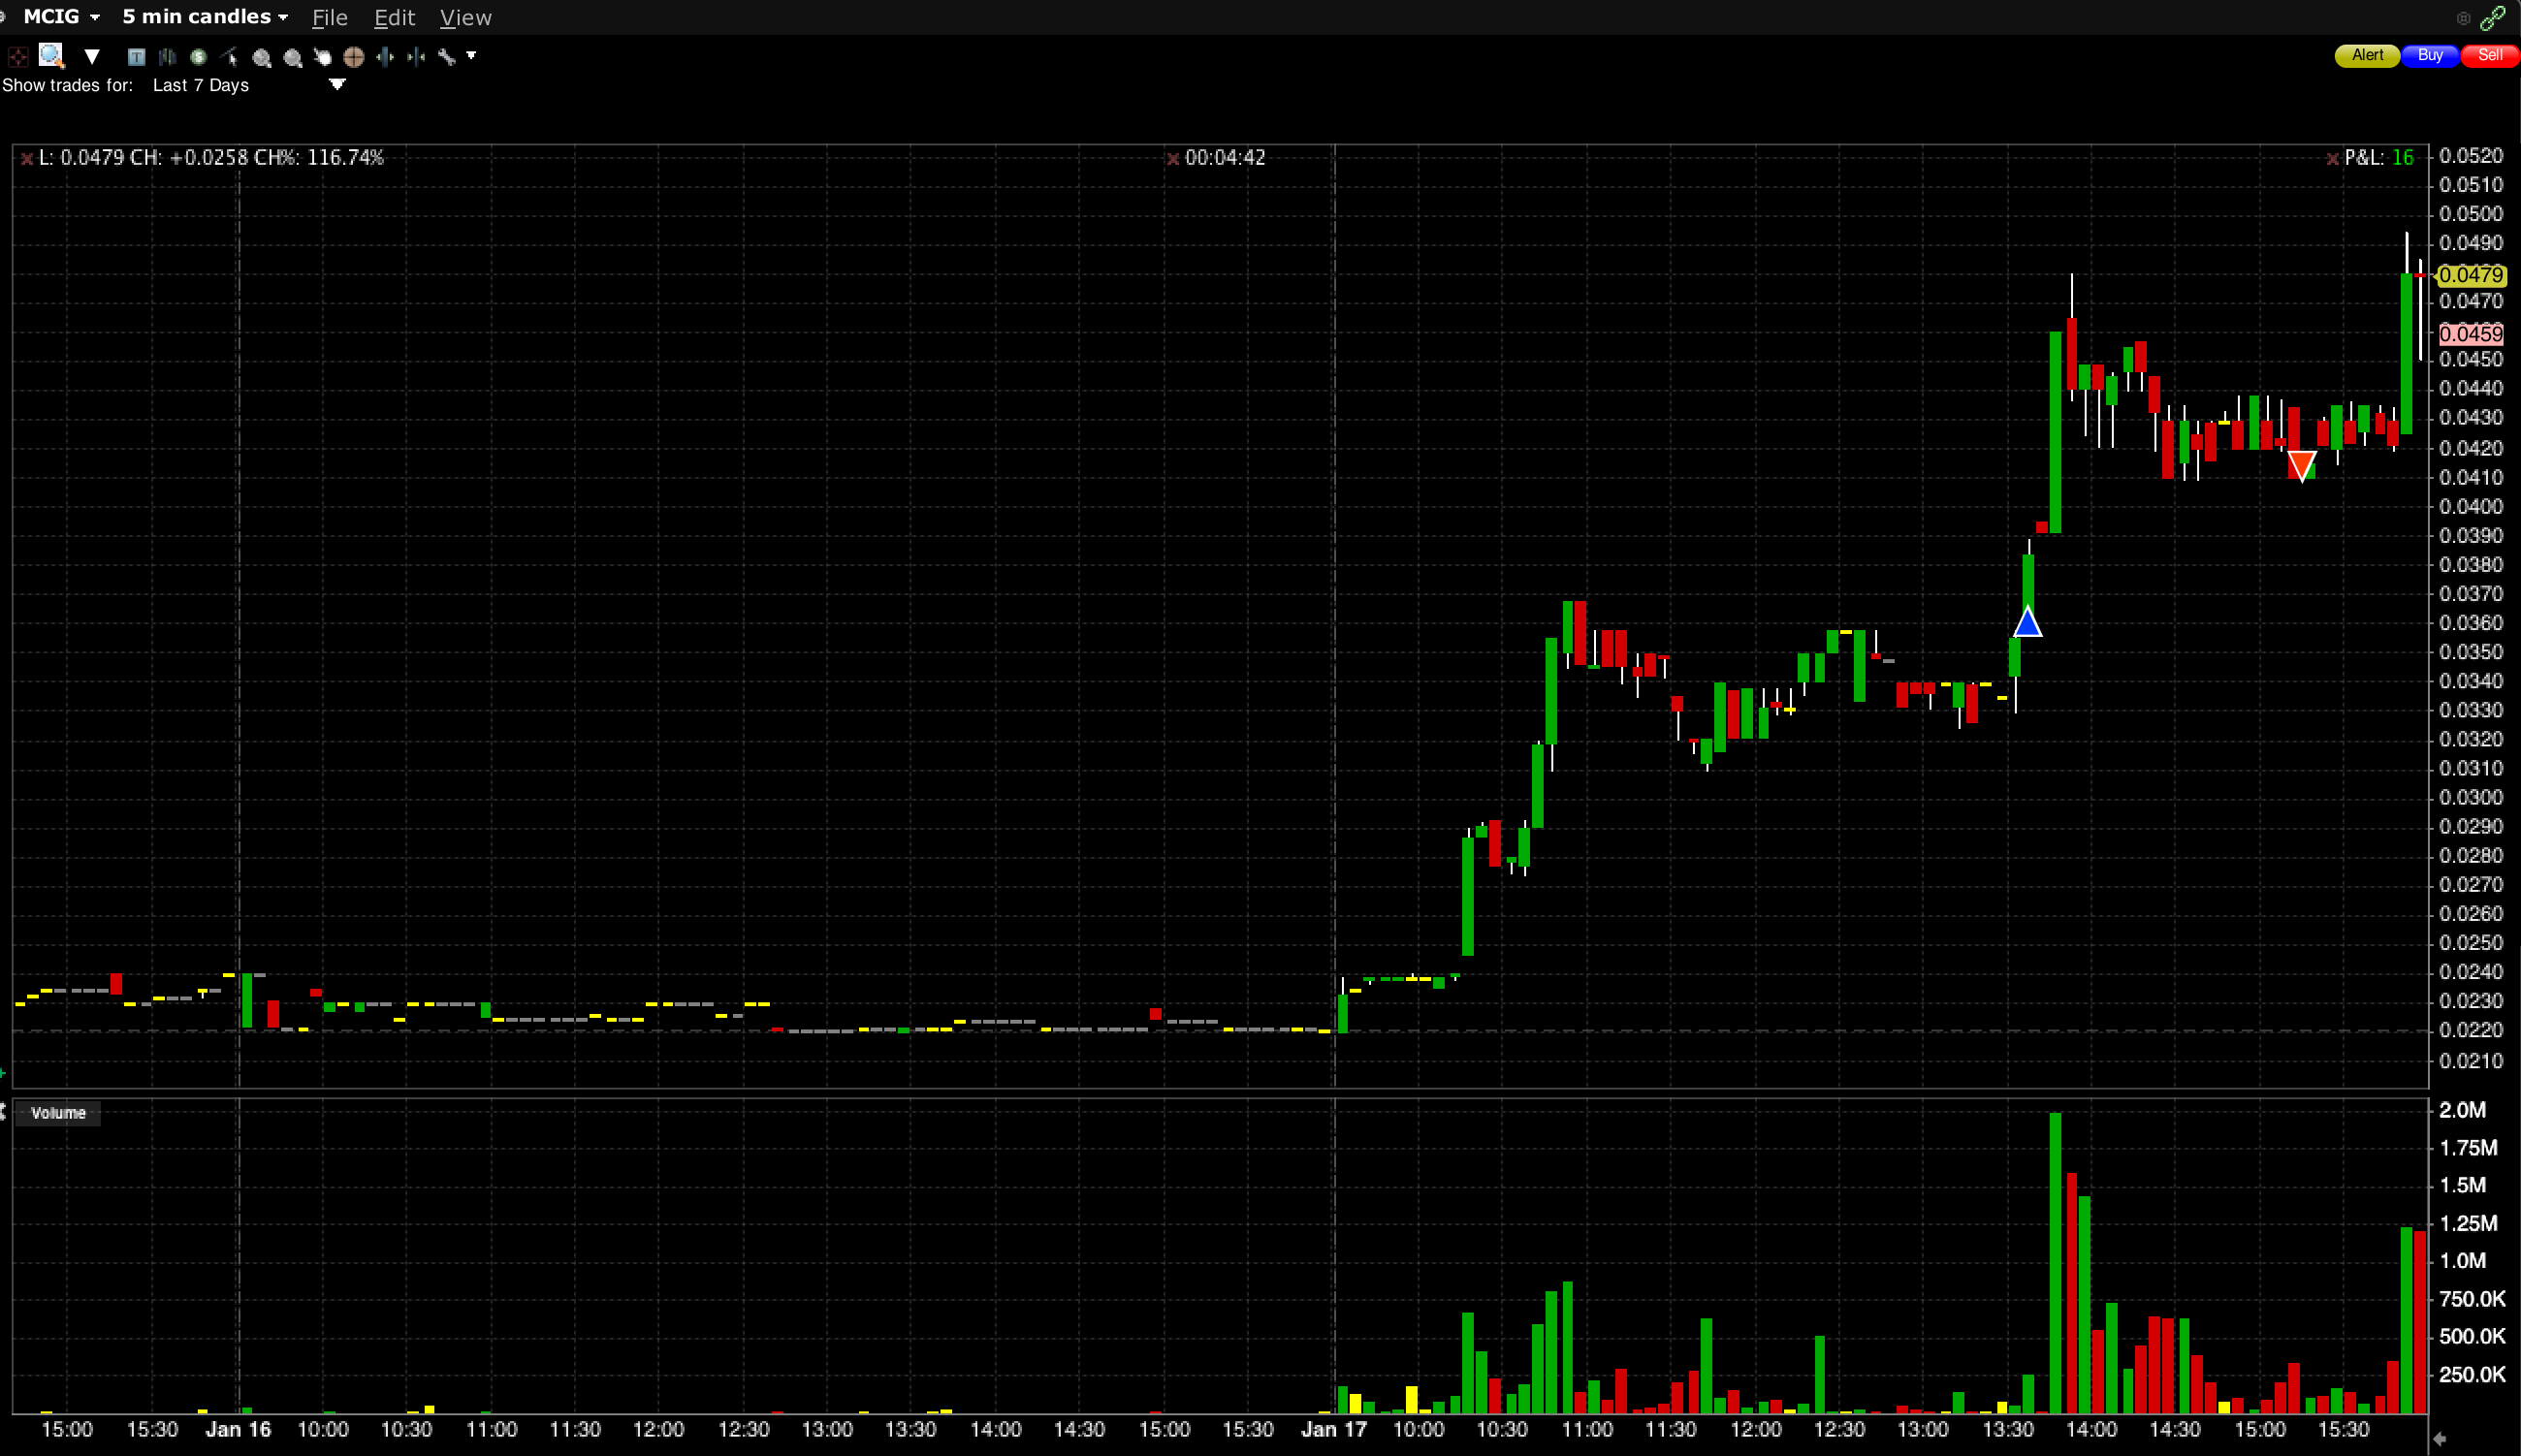 MCIG 5min Intraday Chart with entry and exit points